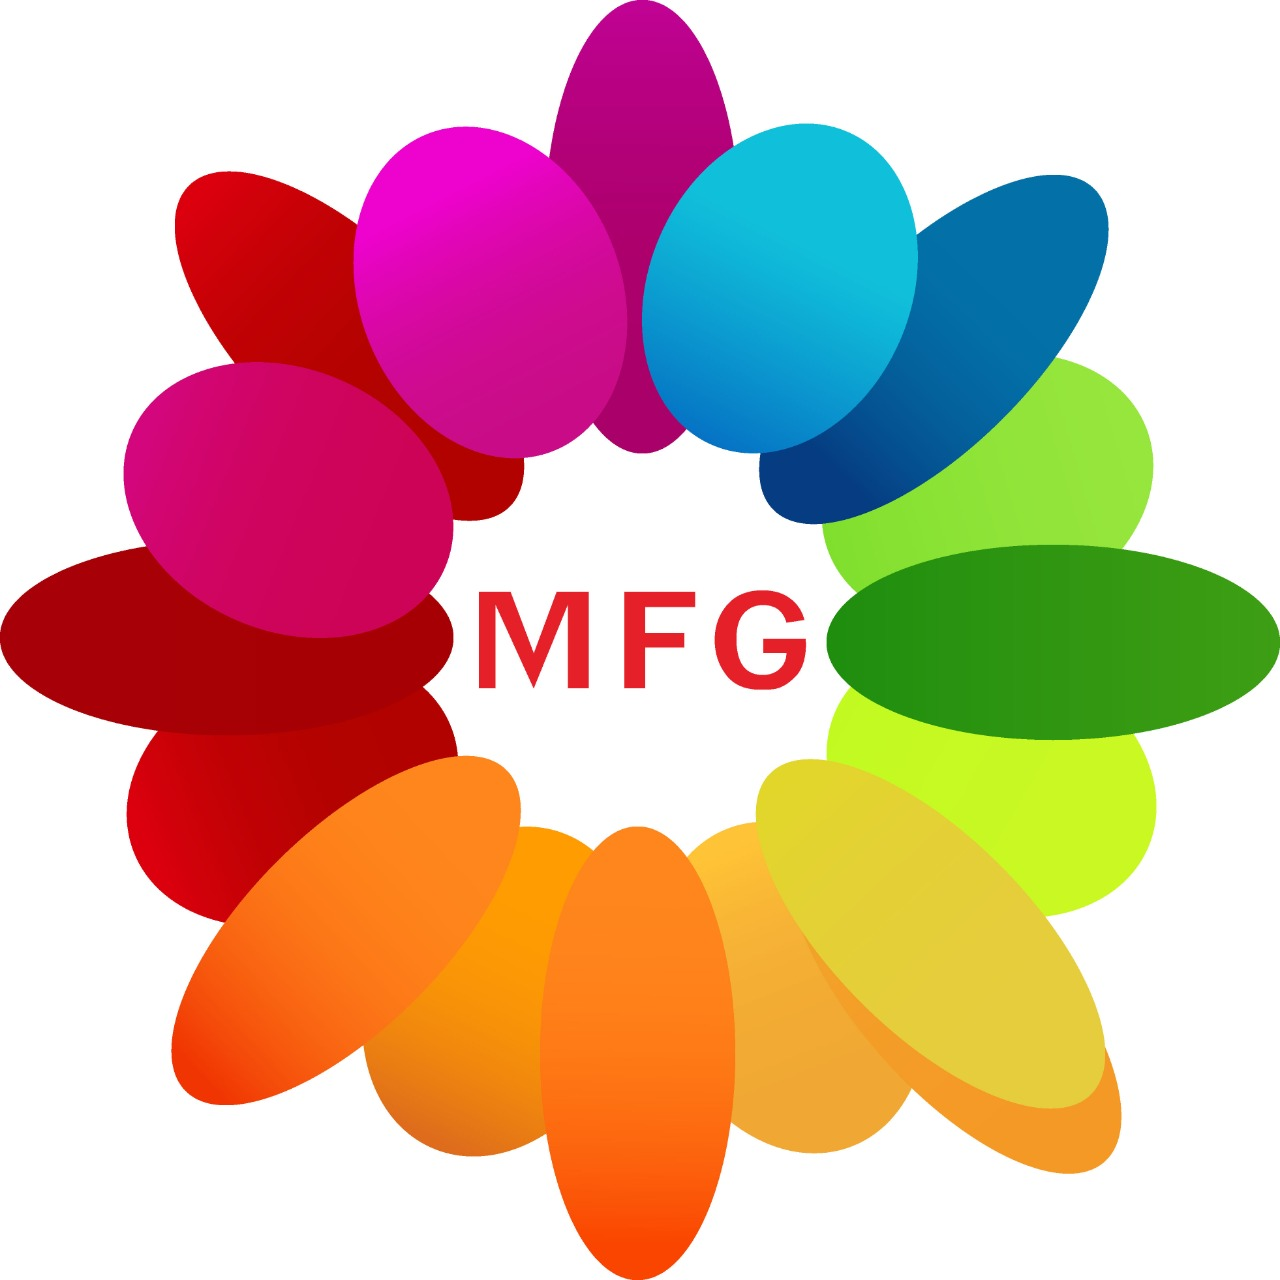 7 white roses with 1 red rose in centre